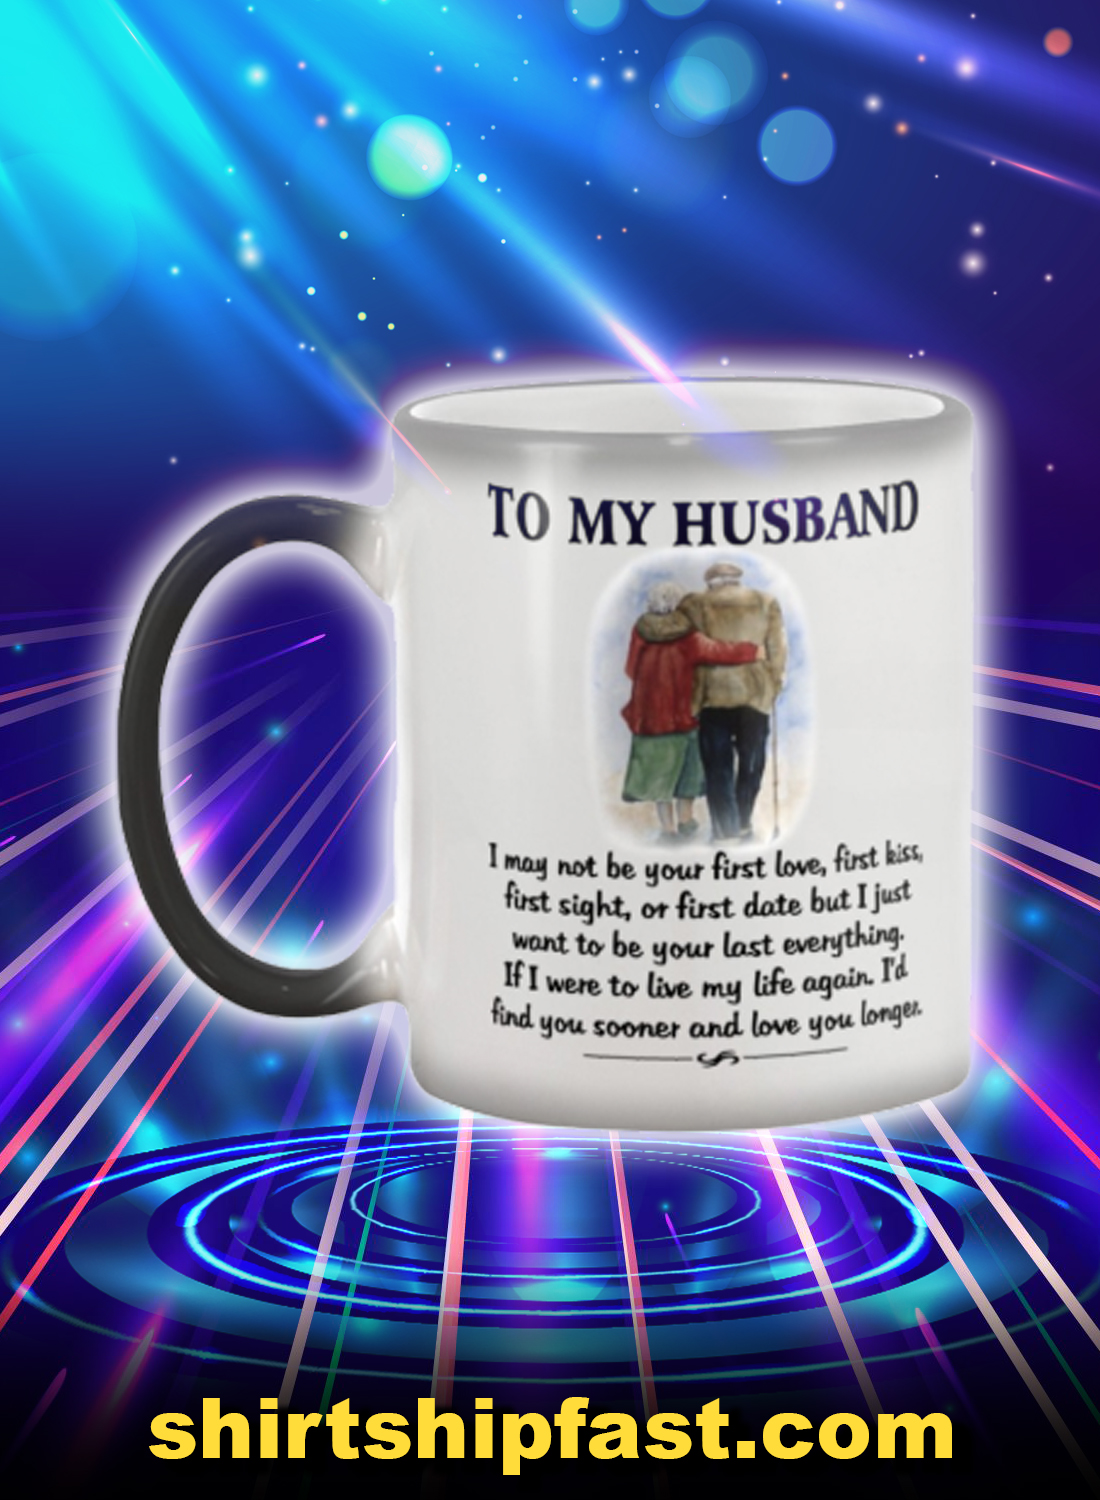 Old couple to my husband mug - Picture 1